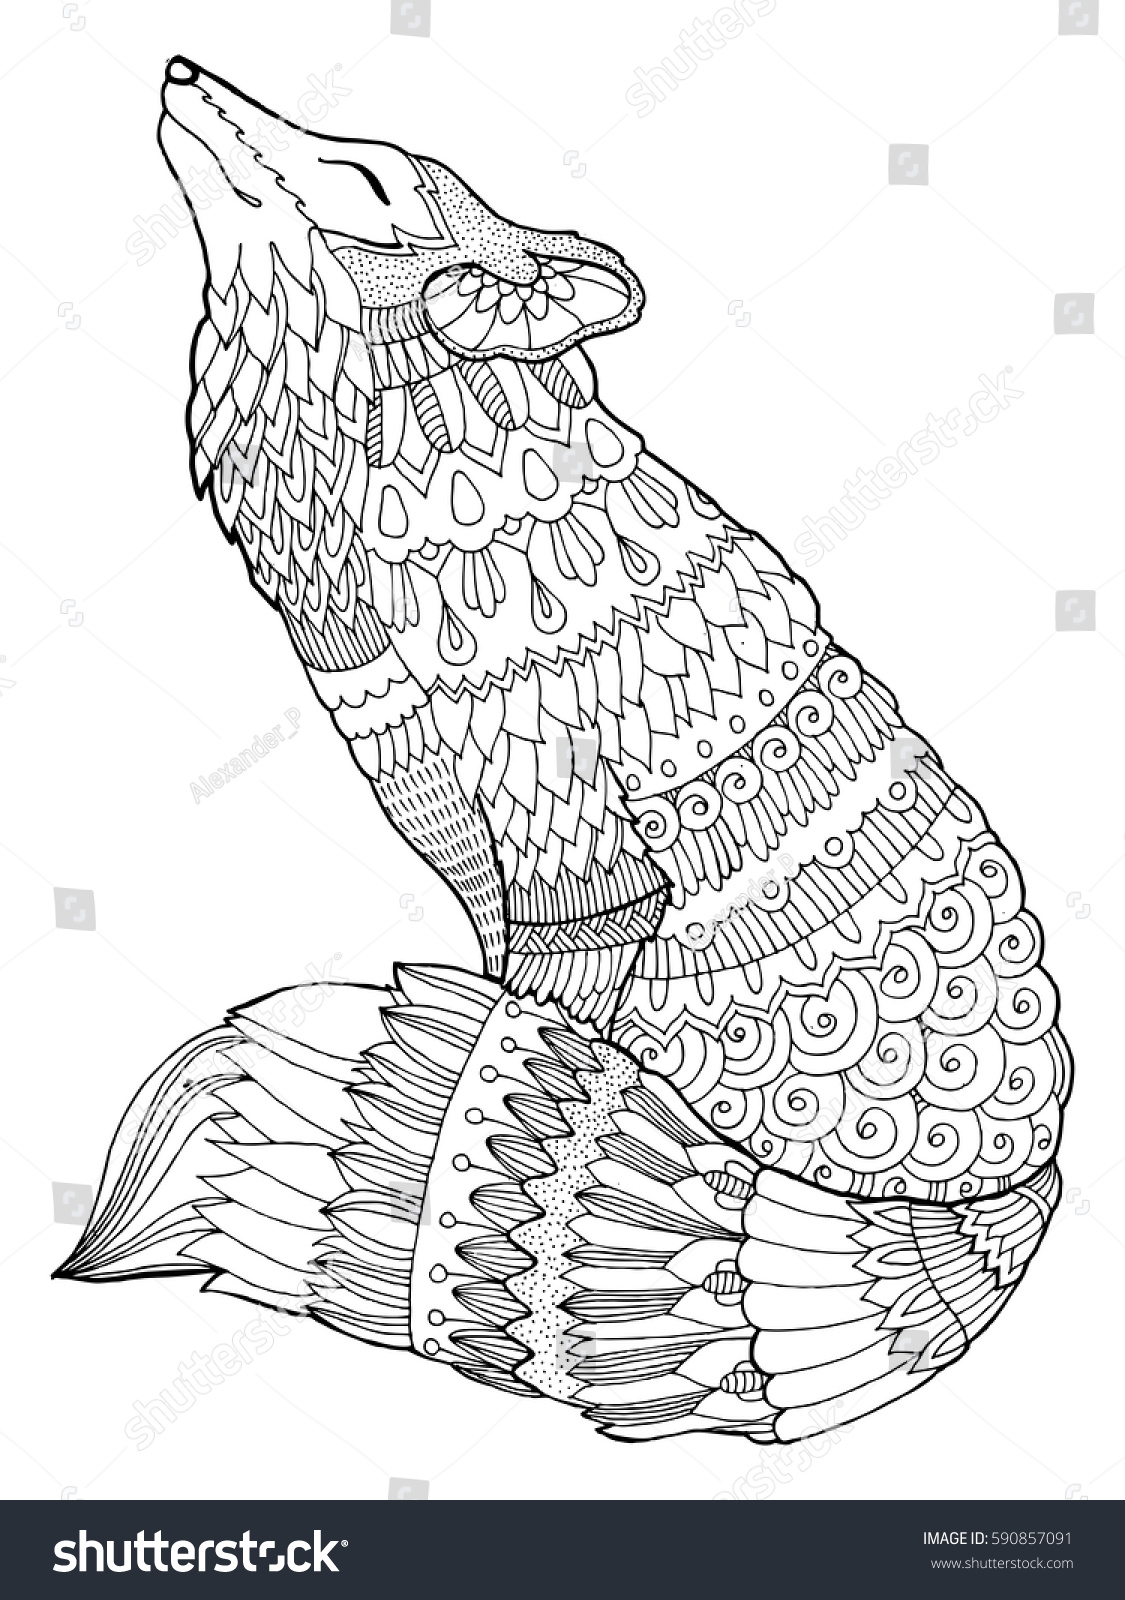 fox coloring book vector illustration black and white lines lace pattern 590857091 - Fox Coloring Book